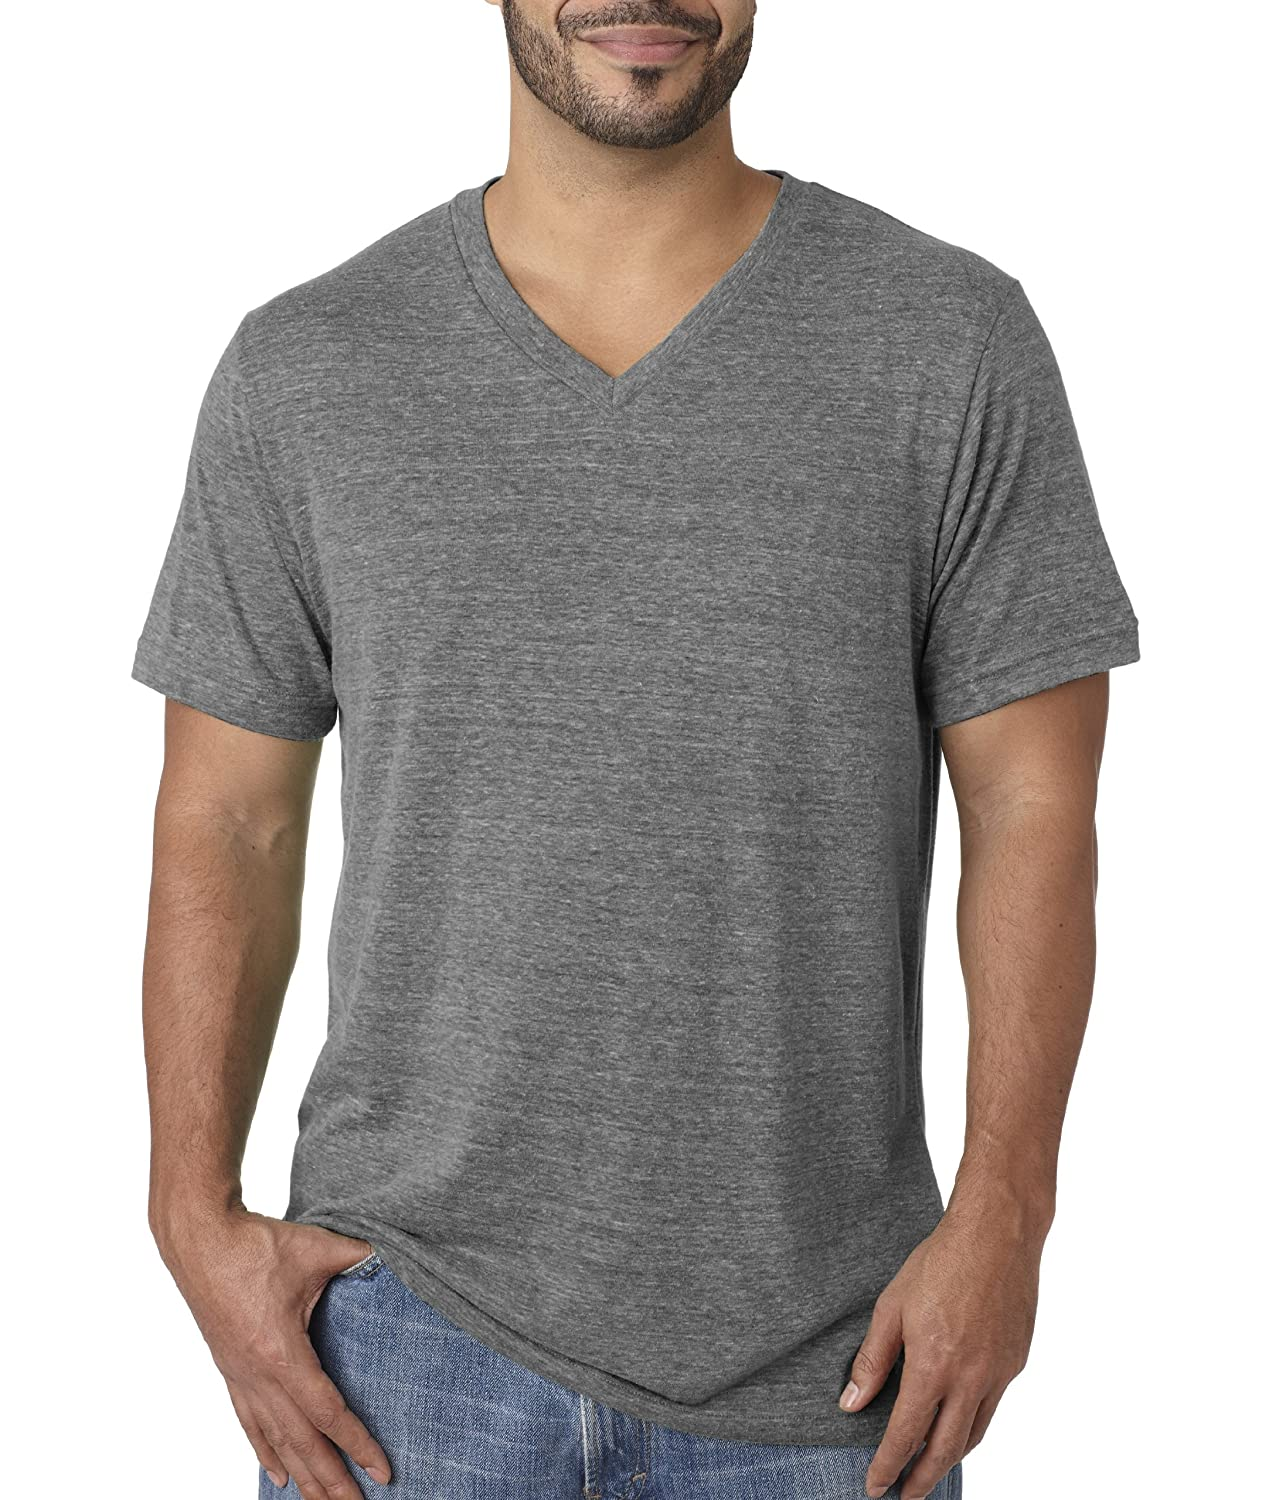 1a8836041ab7 Bella+Canvas 3415 - Unisex Triblend V-Neck T-Shirt | Amazon.com